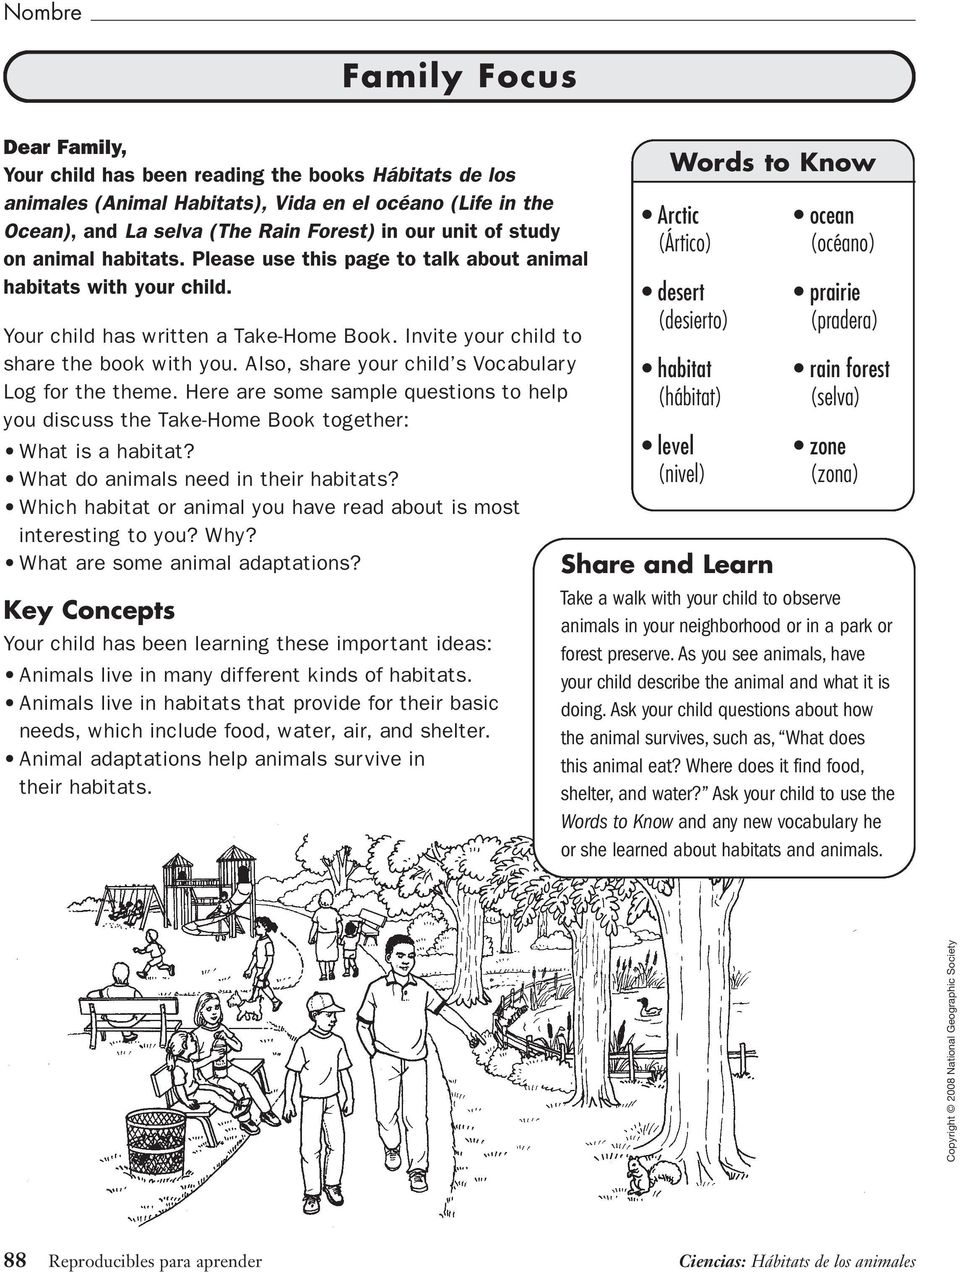 Also, share your child s Vocabulary Log for the theme. Here are some sample questions to help you discuss the Take-Home Book together: What is a habitat? What do animals need in their habitats?